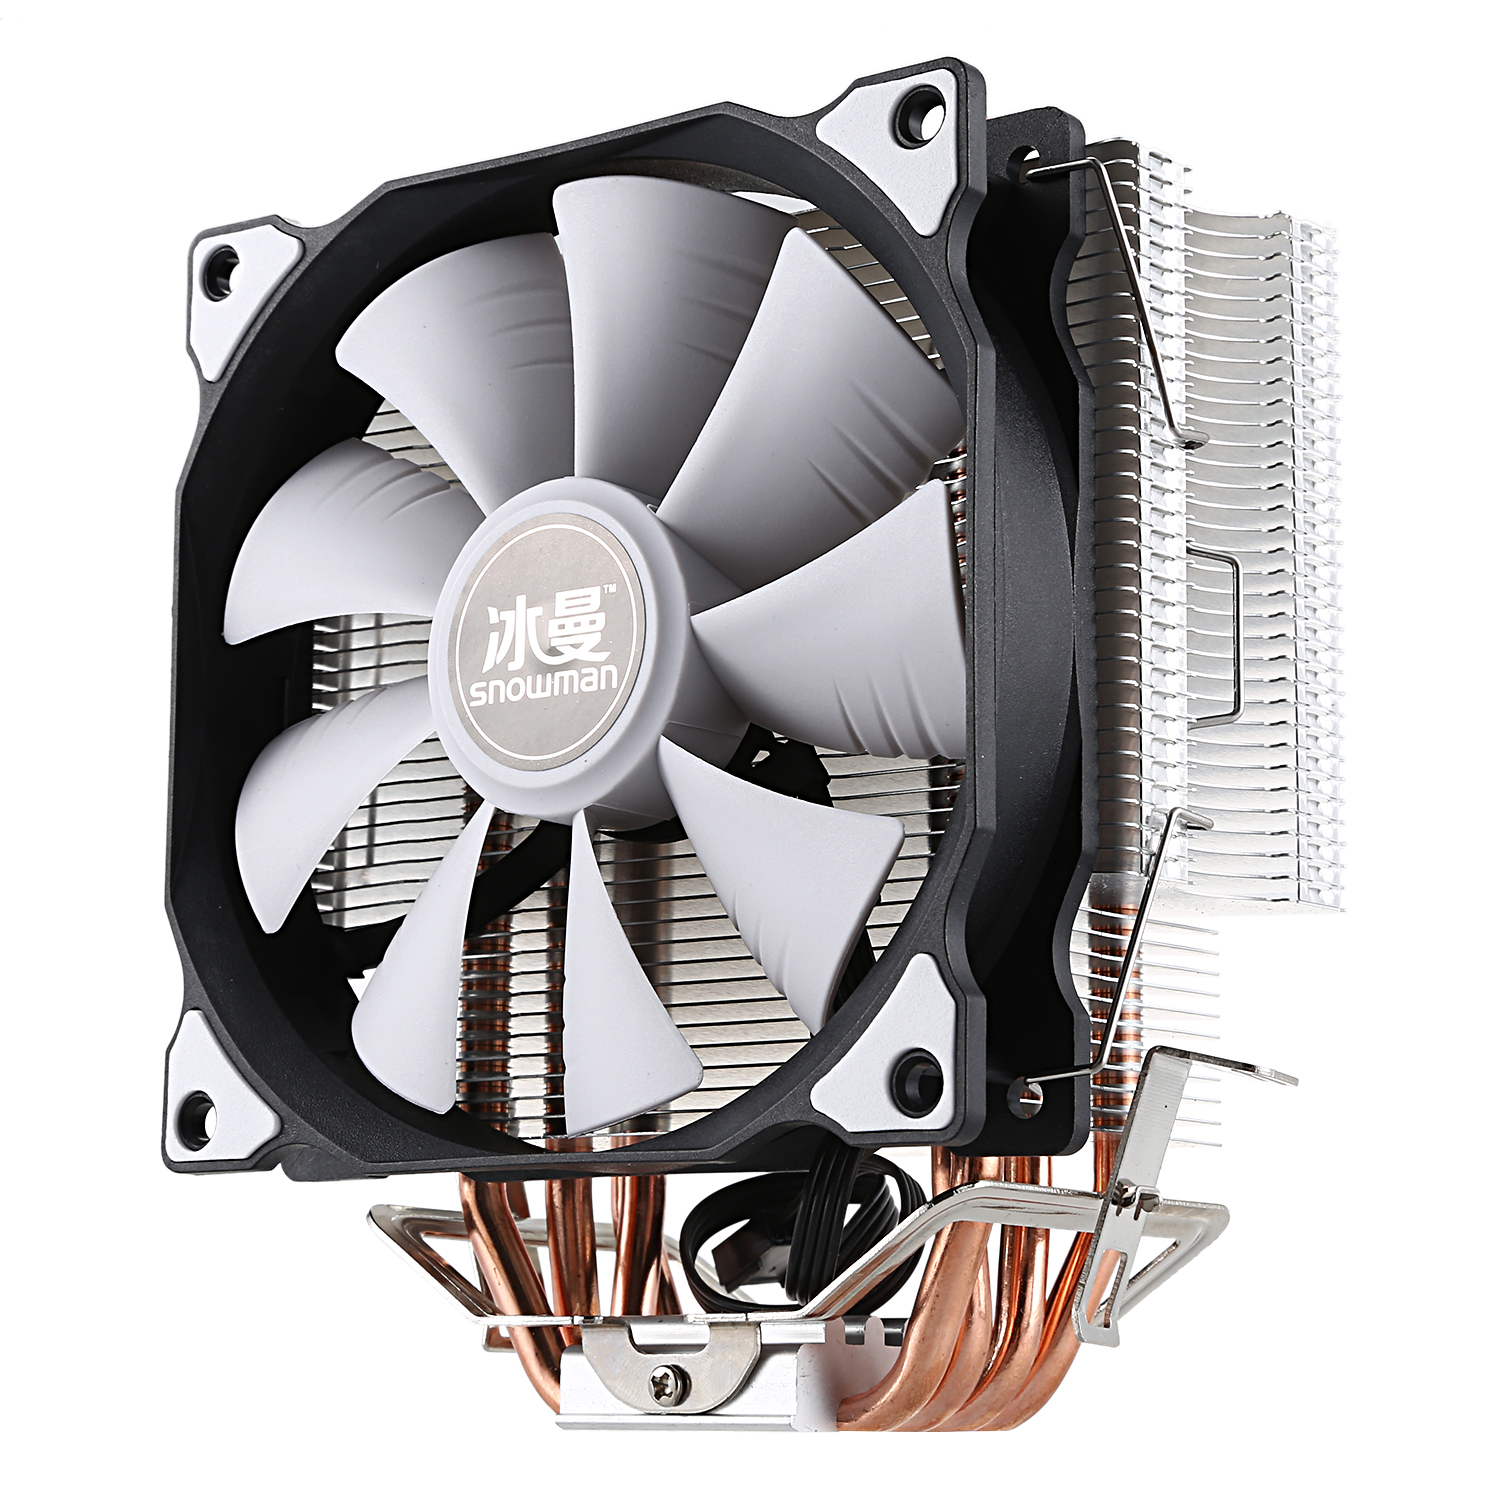 SNOWMAN CPU Cooler Master 4 Pure Copper Heat-pipes freeze Tower Cooling System CPU Cooling Fan with PWM Fans 5